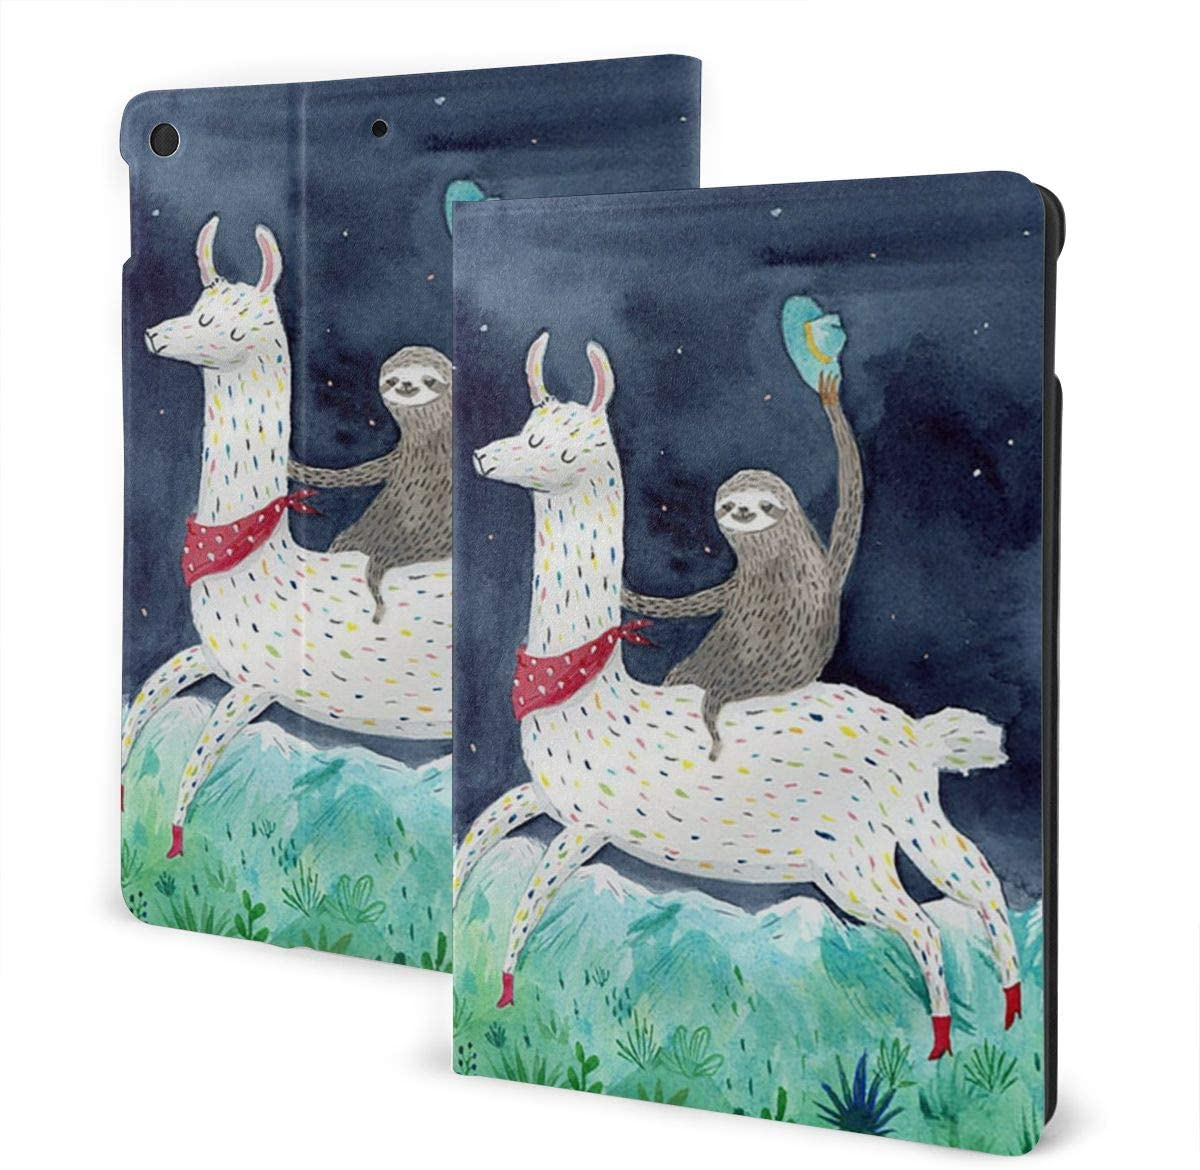 Compatible Case with iPad 7th Generation 10.2 Inch 2019 New Sloth Riding Llama Painting Rubber Back Cover Protective Case Adjustable Stand Auto Wake/Sleep Smart Case for Apple ipad